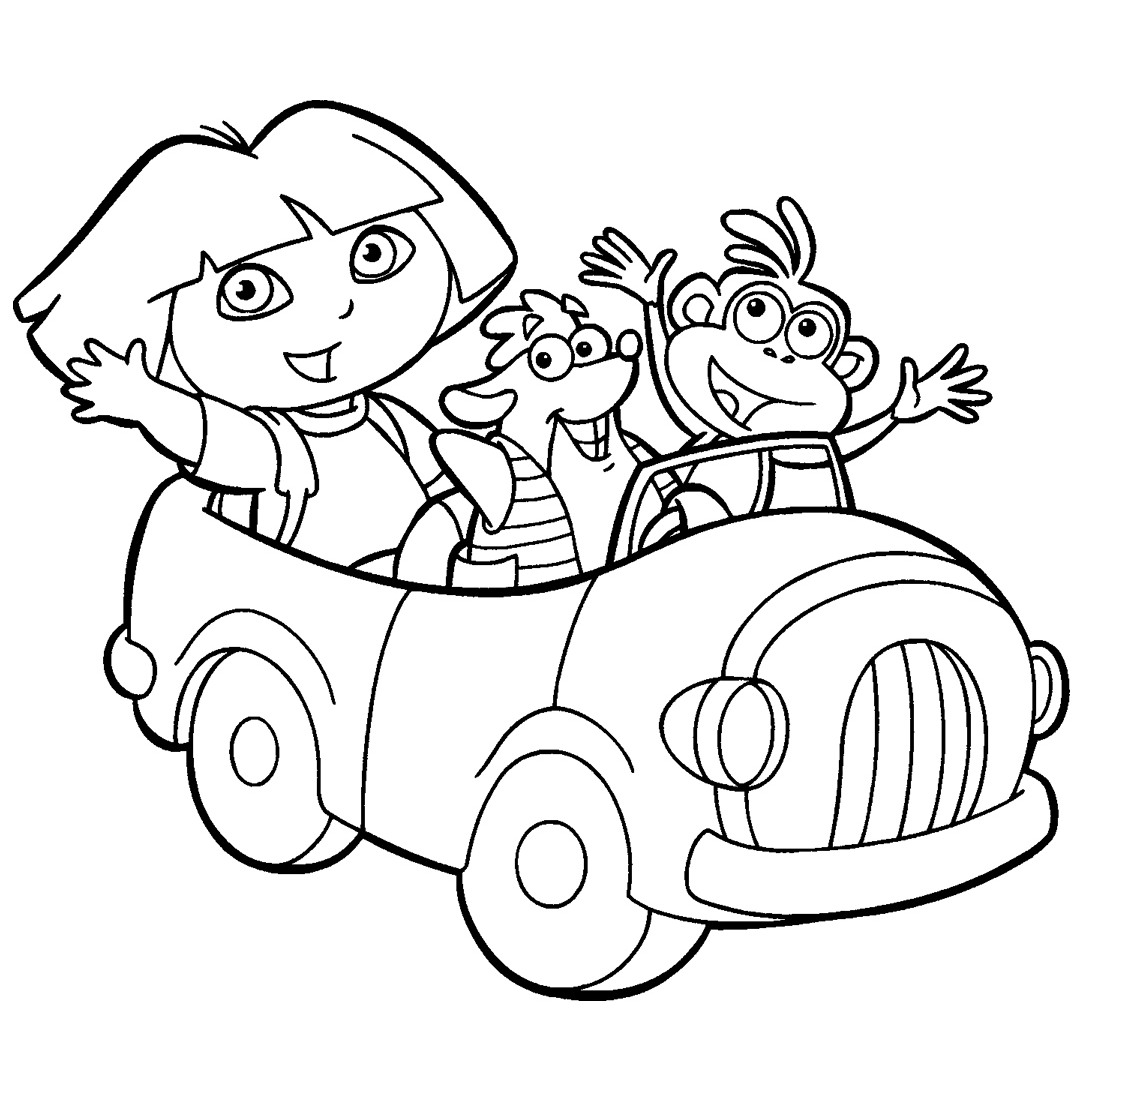 printable dora pictures dora coloring pages free printables momjunction printable dora pictures